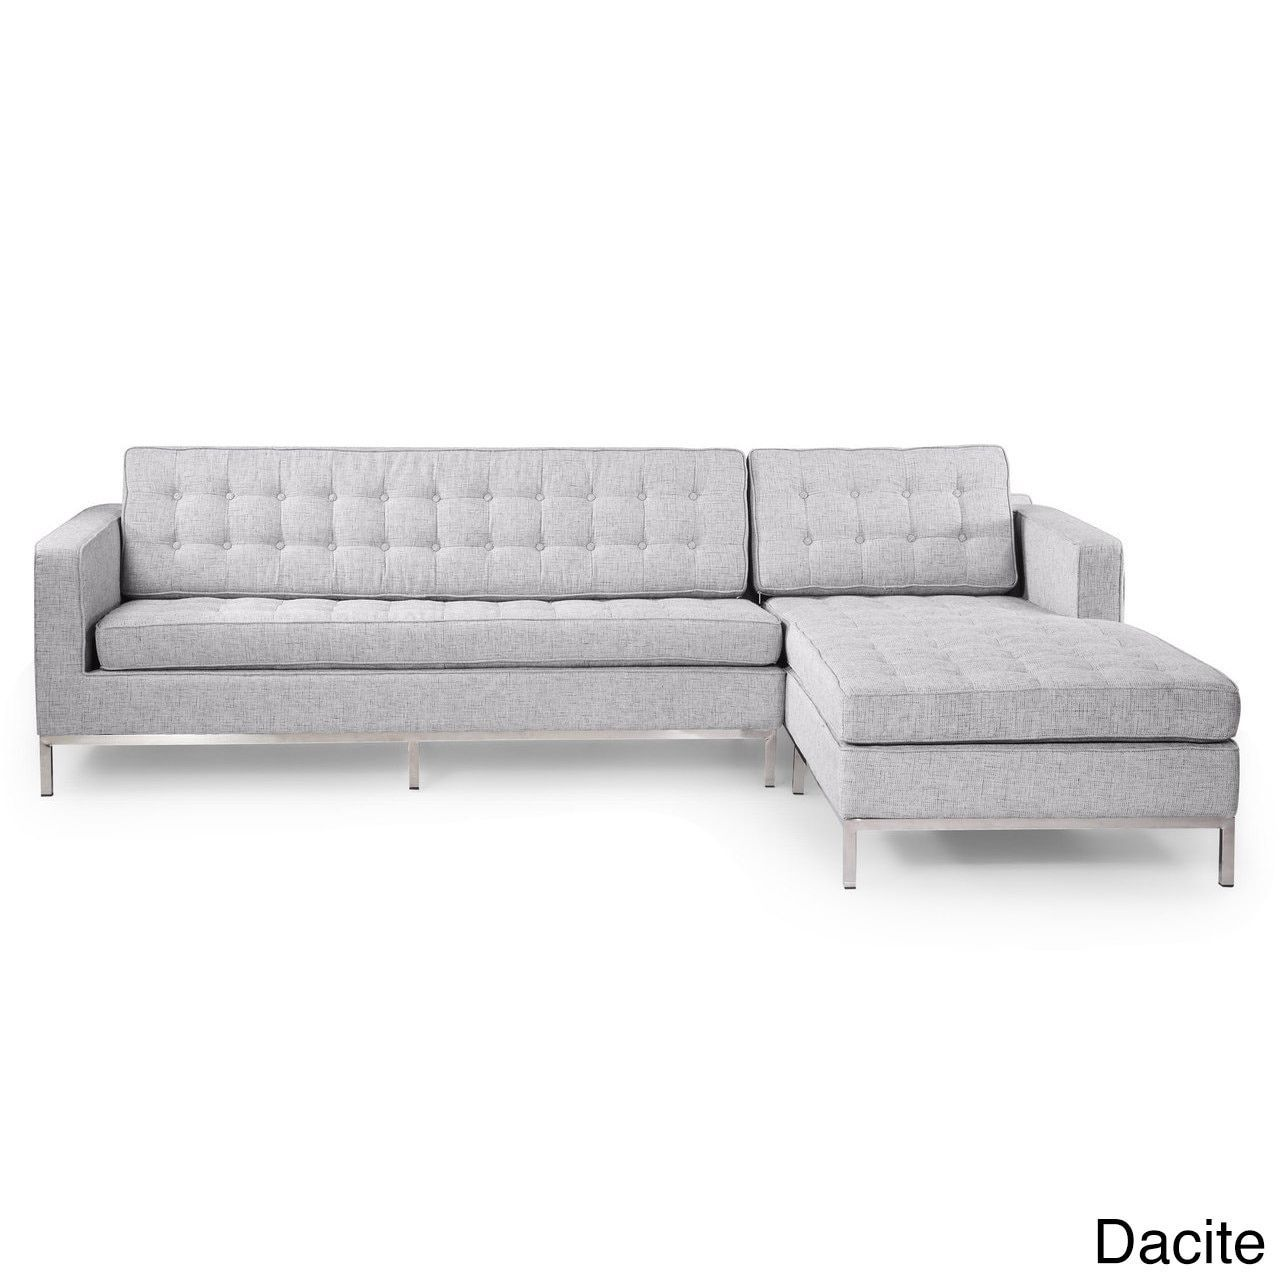 Kardiel Florence Knoll Style Houndstooth Twill Right Facing Sofa  # Fabrica De Muebles Diqua